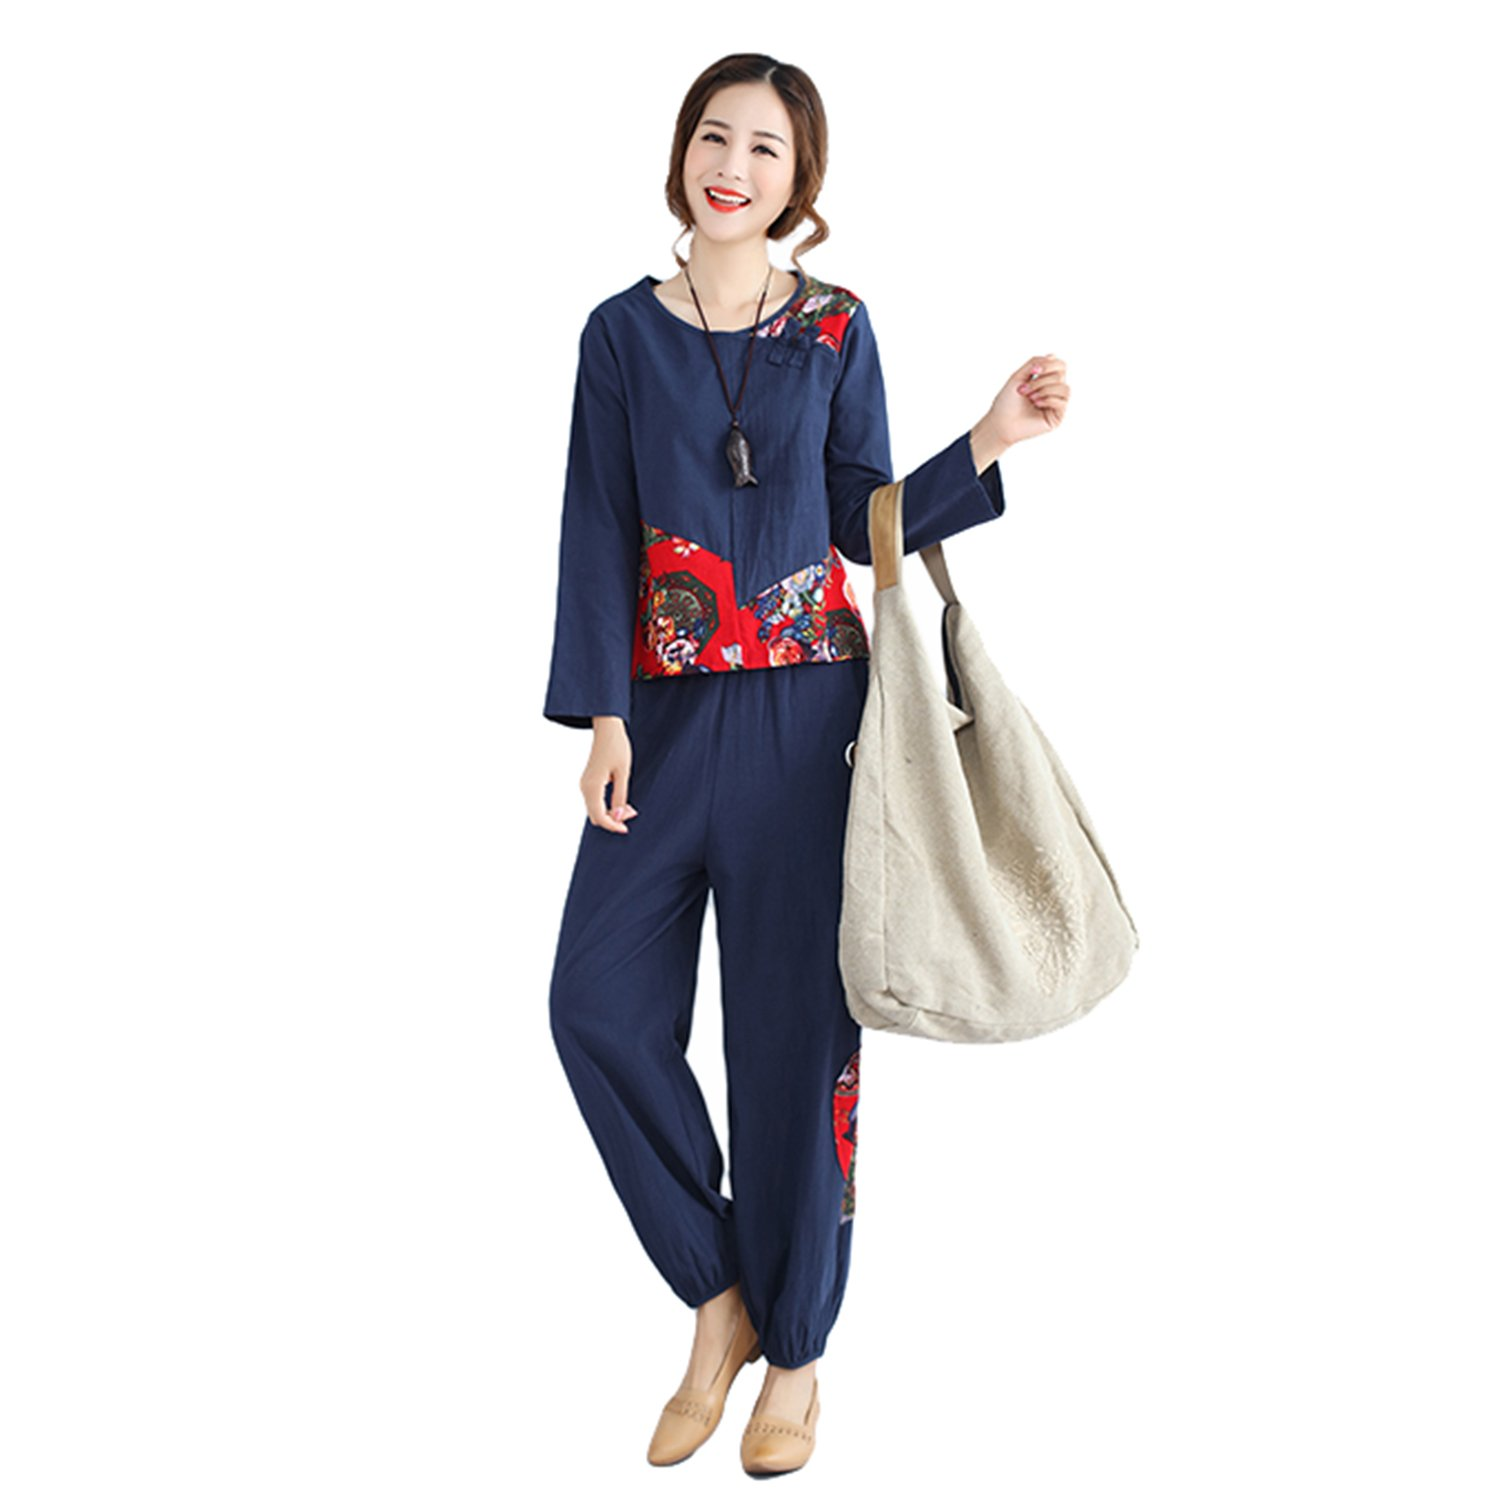 HÖTER Women's Oriental National Style Printed Floral Winter Sport Leisure Cotton Pants Suit(Two Pcs/Set)